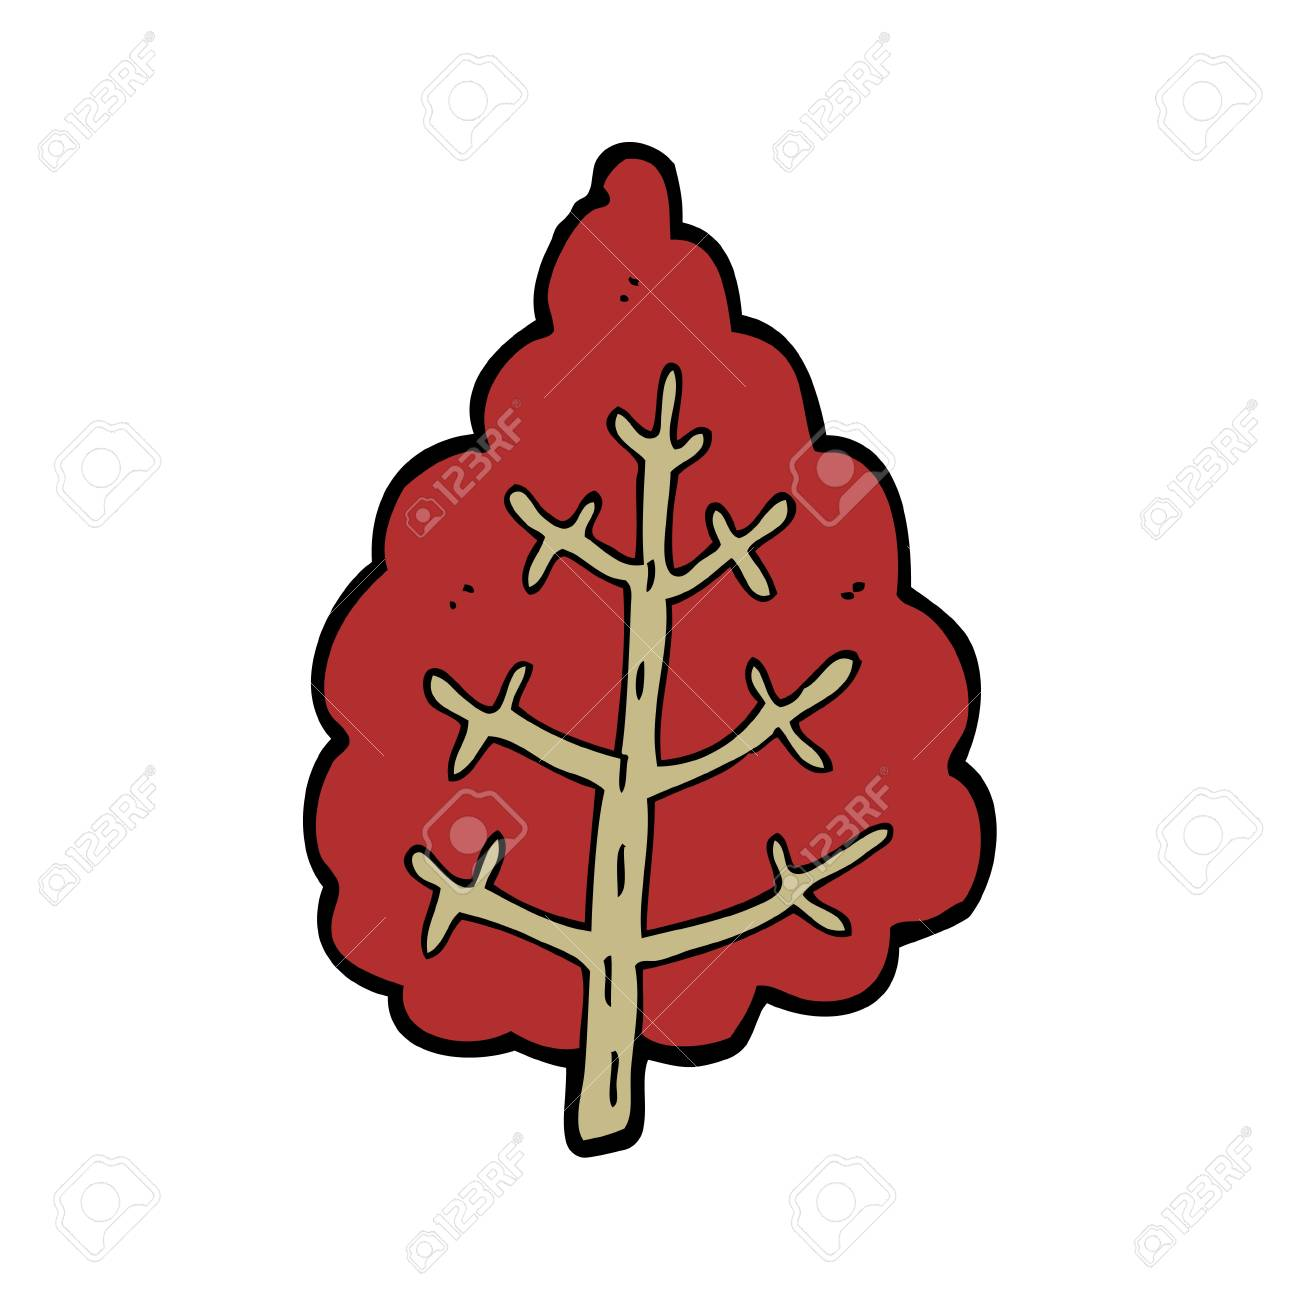 cartoon tree Stock Vector - 20304978